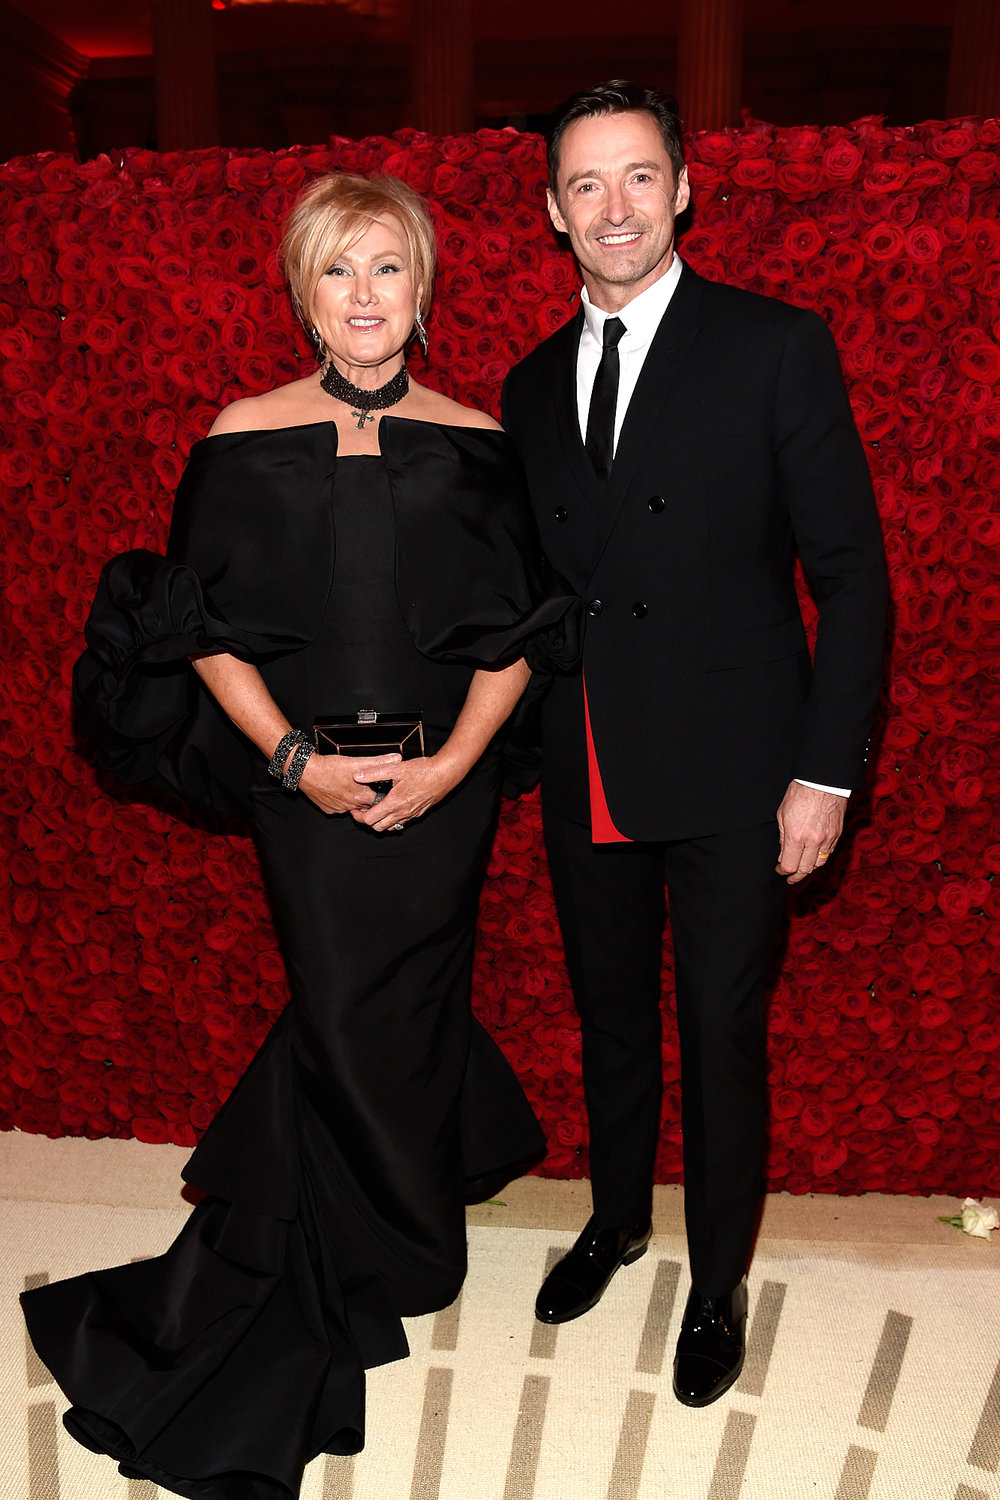 76. HUGH JACKMAN & DEBORRA-LEE FURNESS